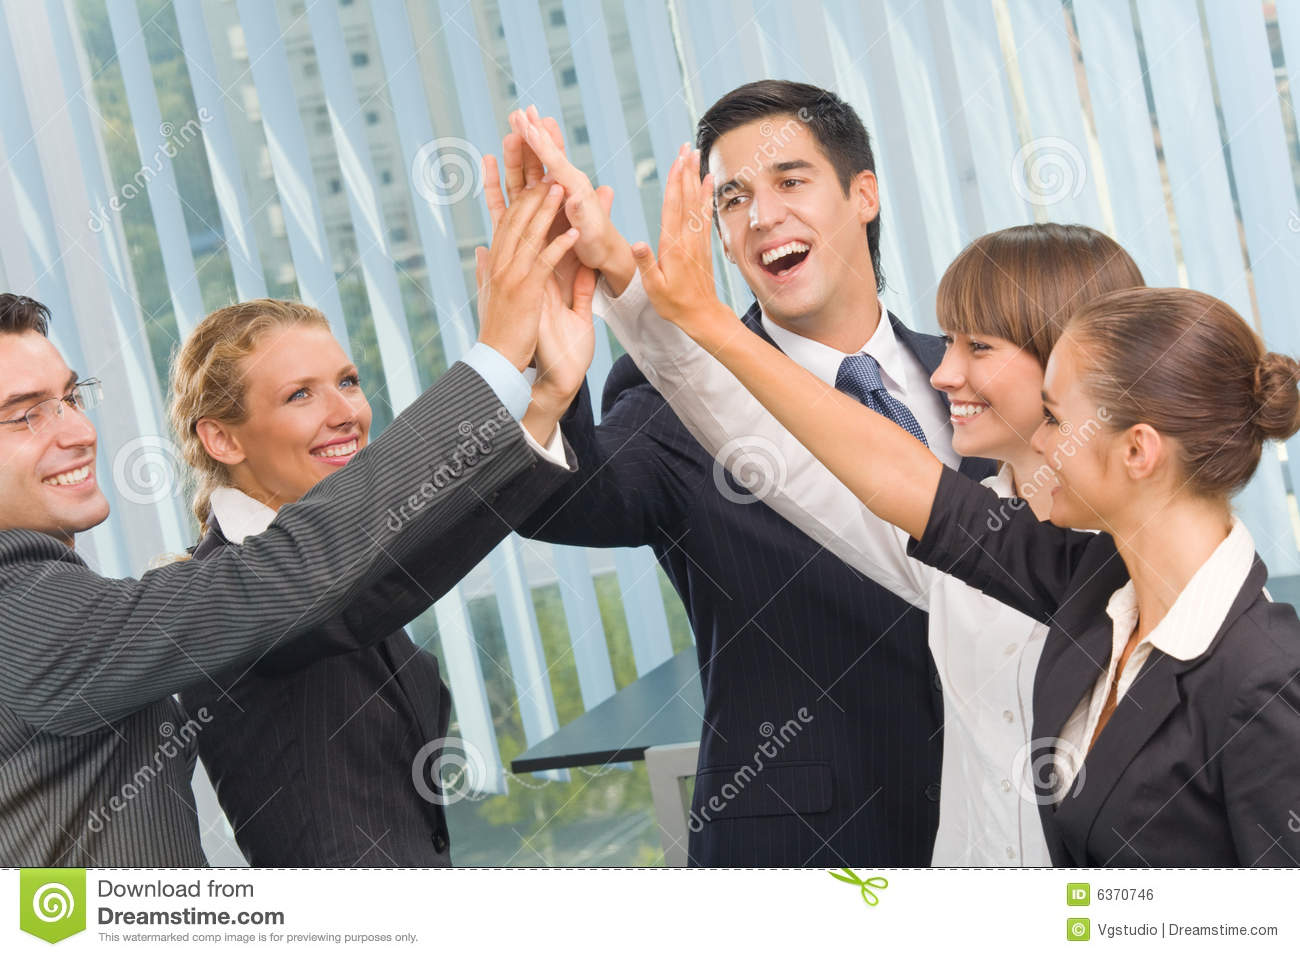 https://thumbs.dreamstime.com/z/happy-business-team-office-6370746.jpg